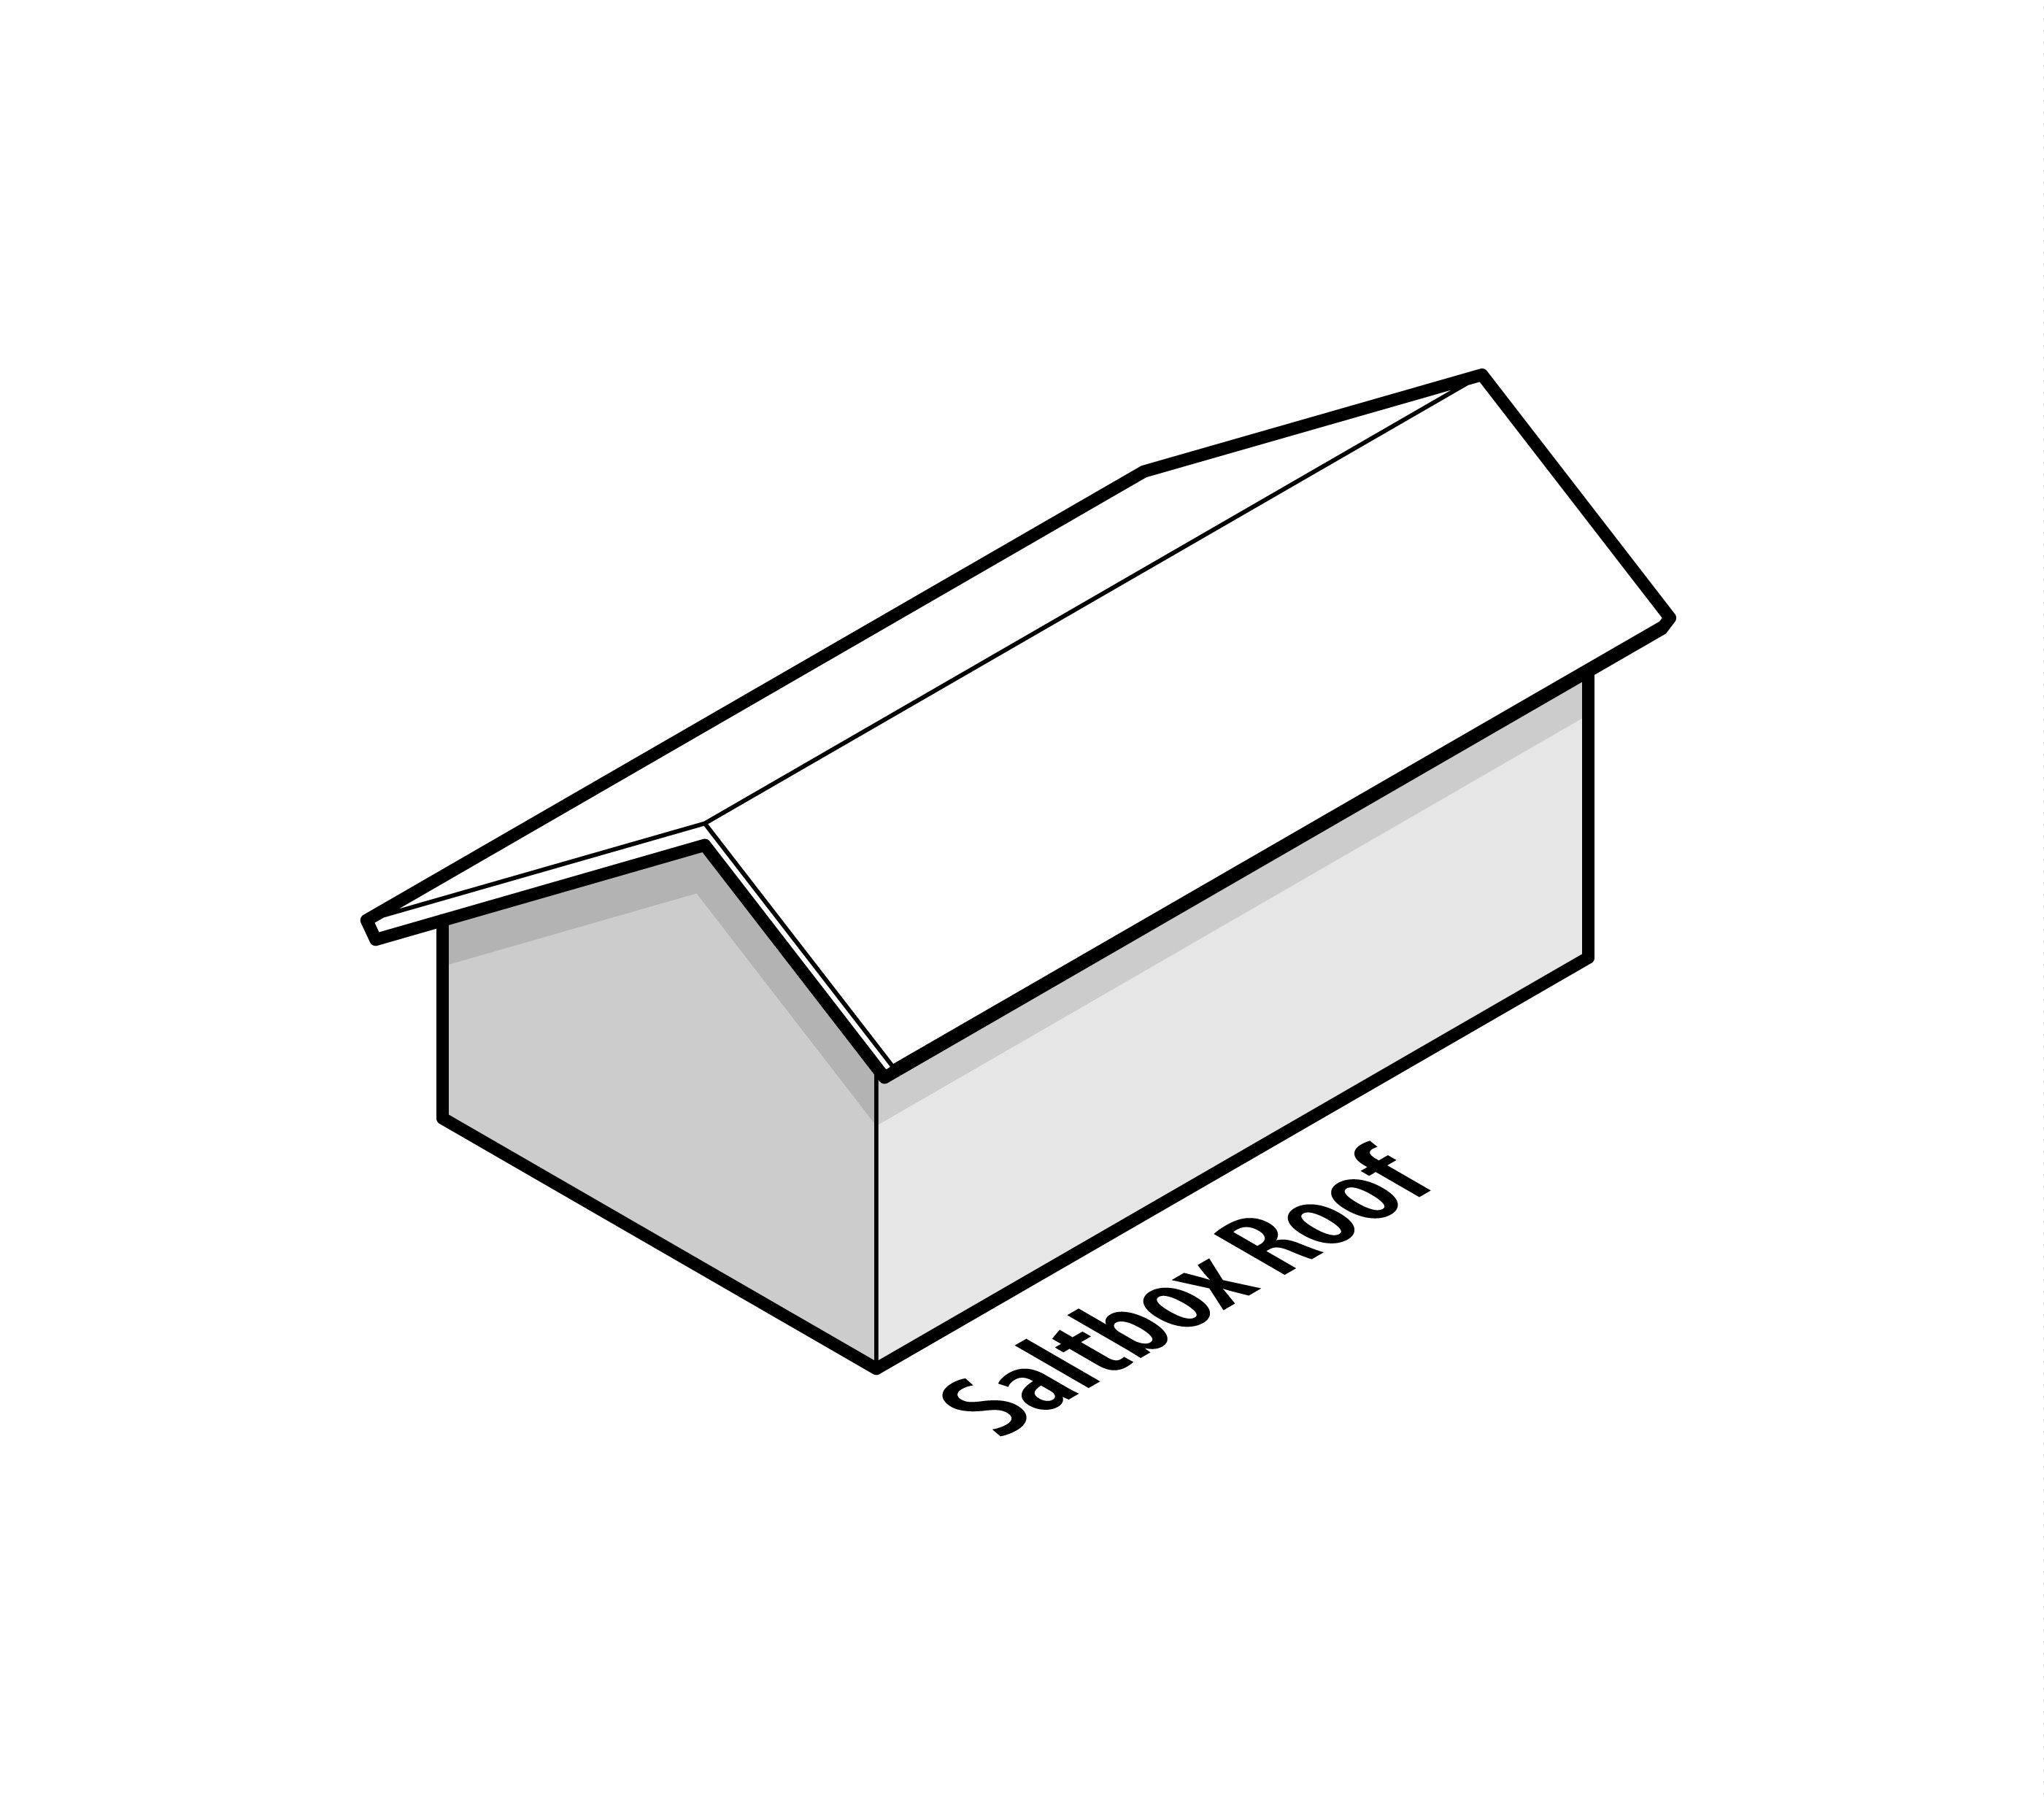 Home Roof Designs in addition 88312842672312142 also 362399101245774585 together with Morton 5543 furthermore Tiny House Plans Approved Alameda Review Board. on interior shed dormers